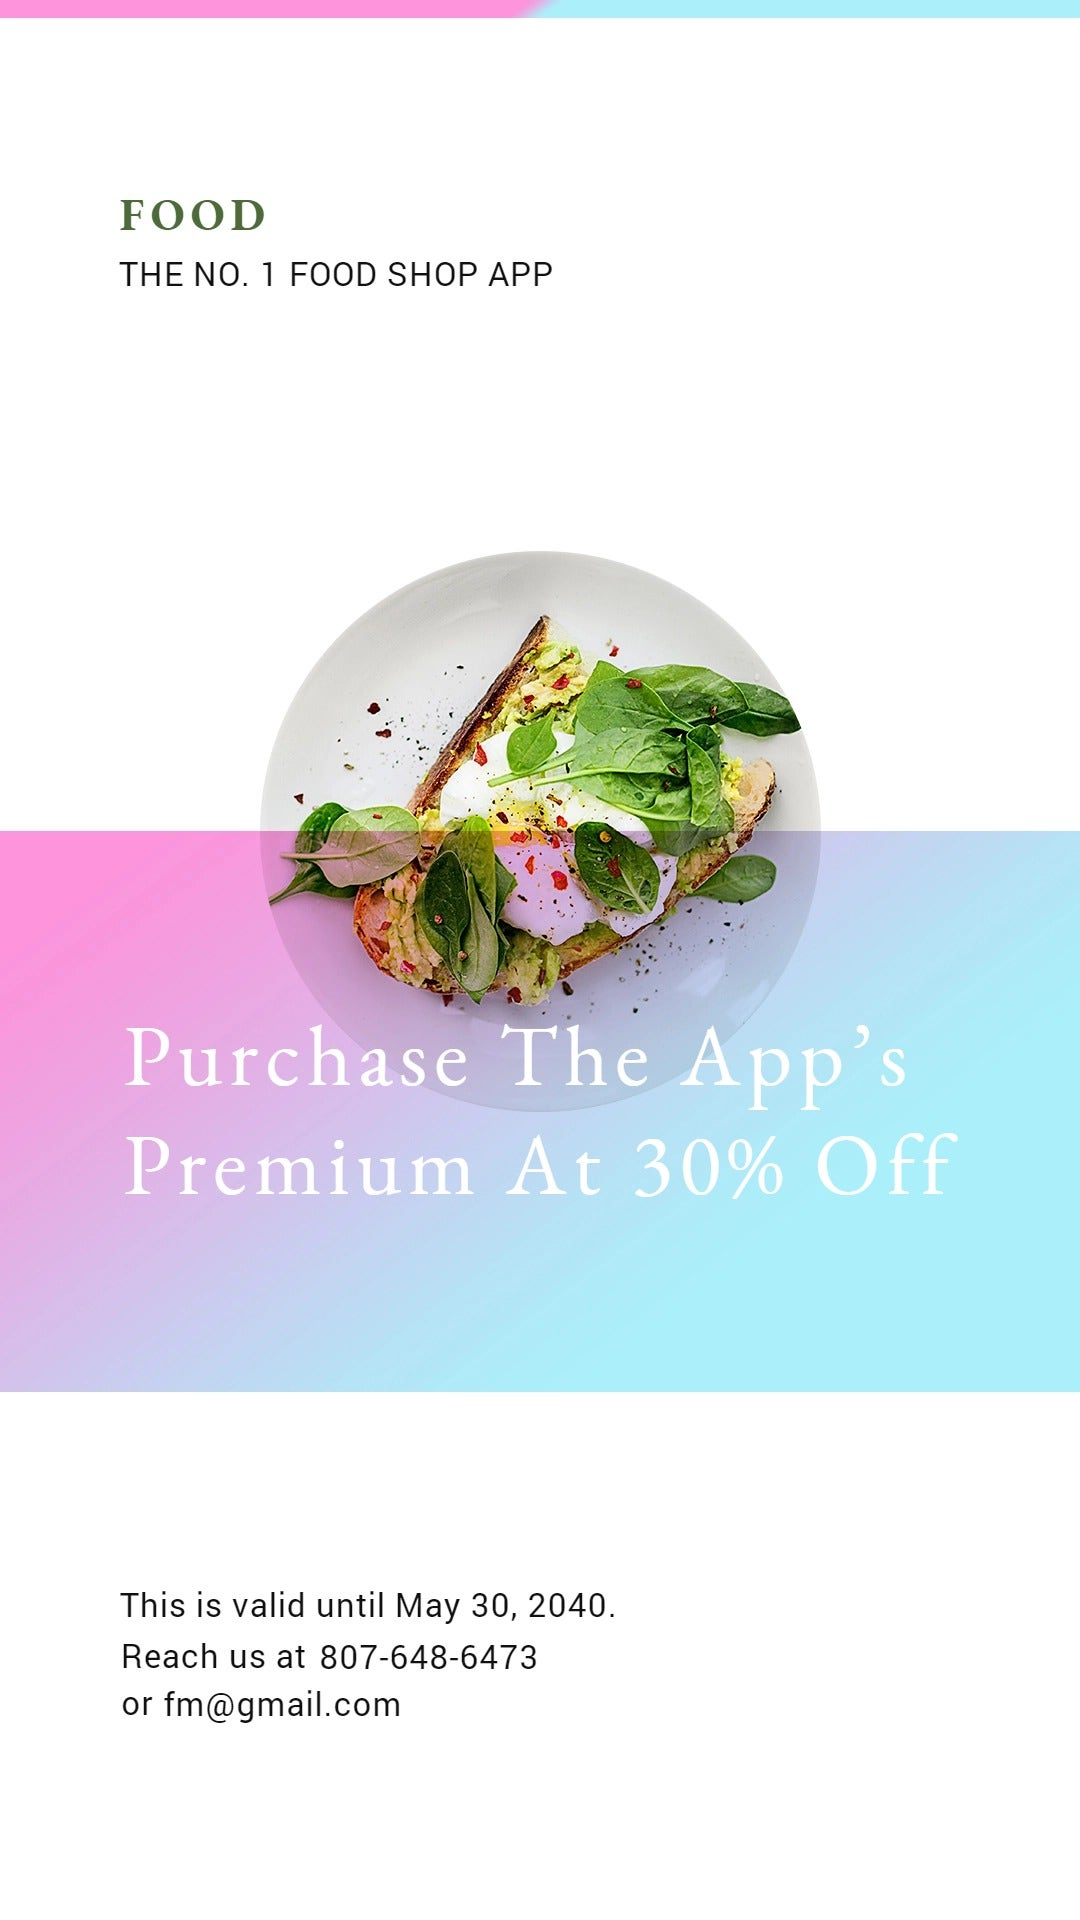 Food App Promotion Whatsapp Post Template